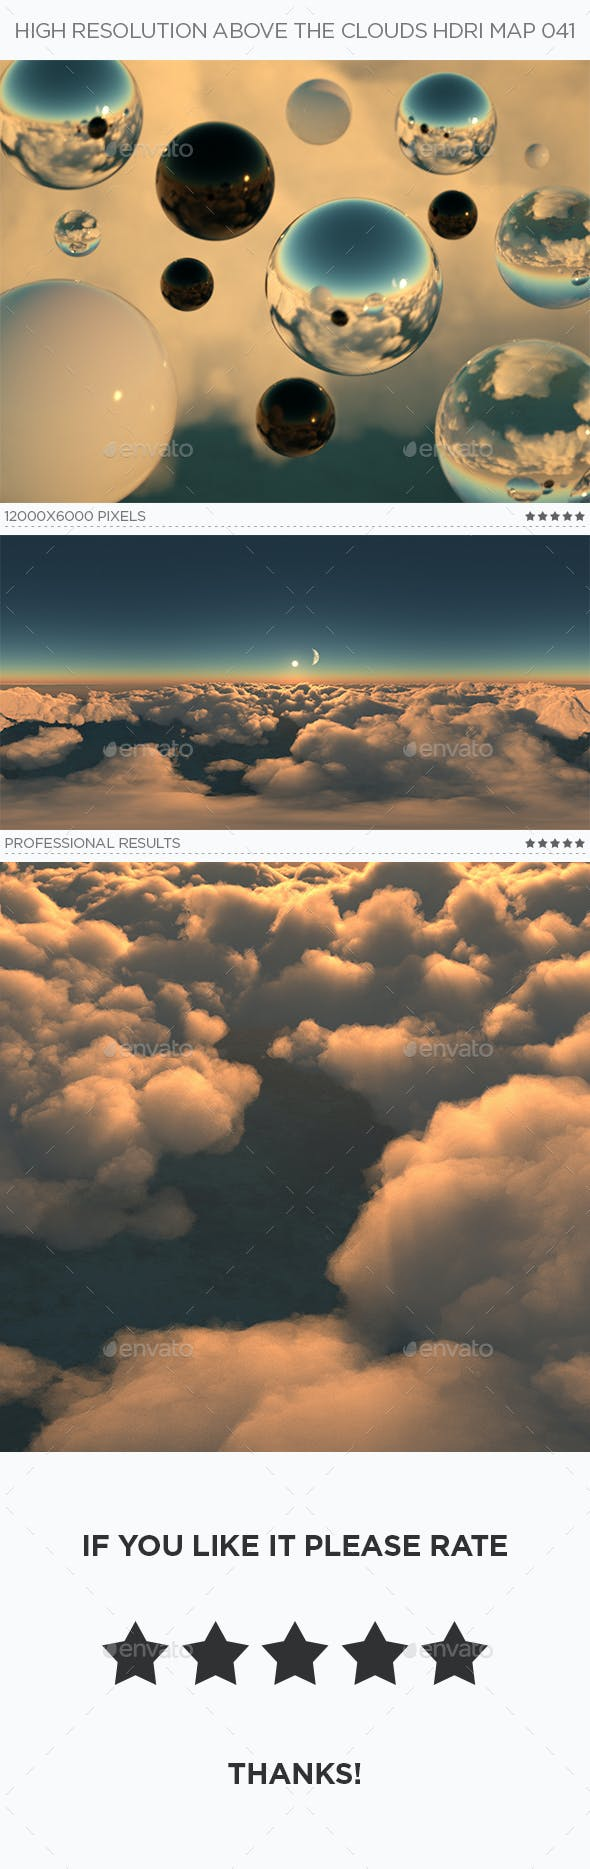 High Resolution Above The Clouds HDRi Map 041 - 3DOcean Item for Sale